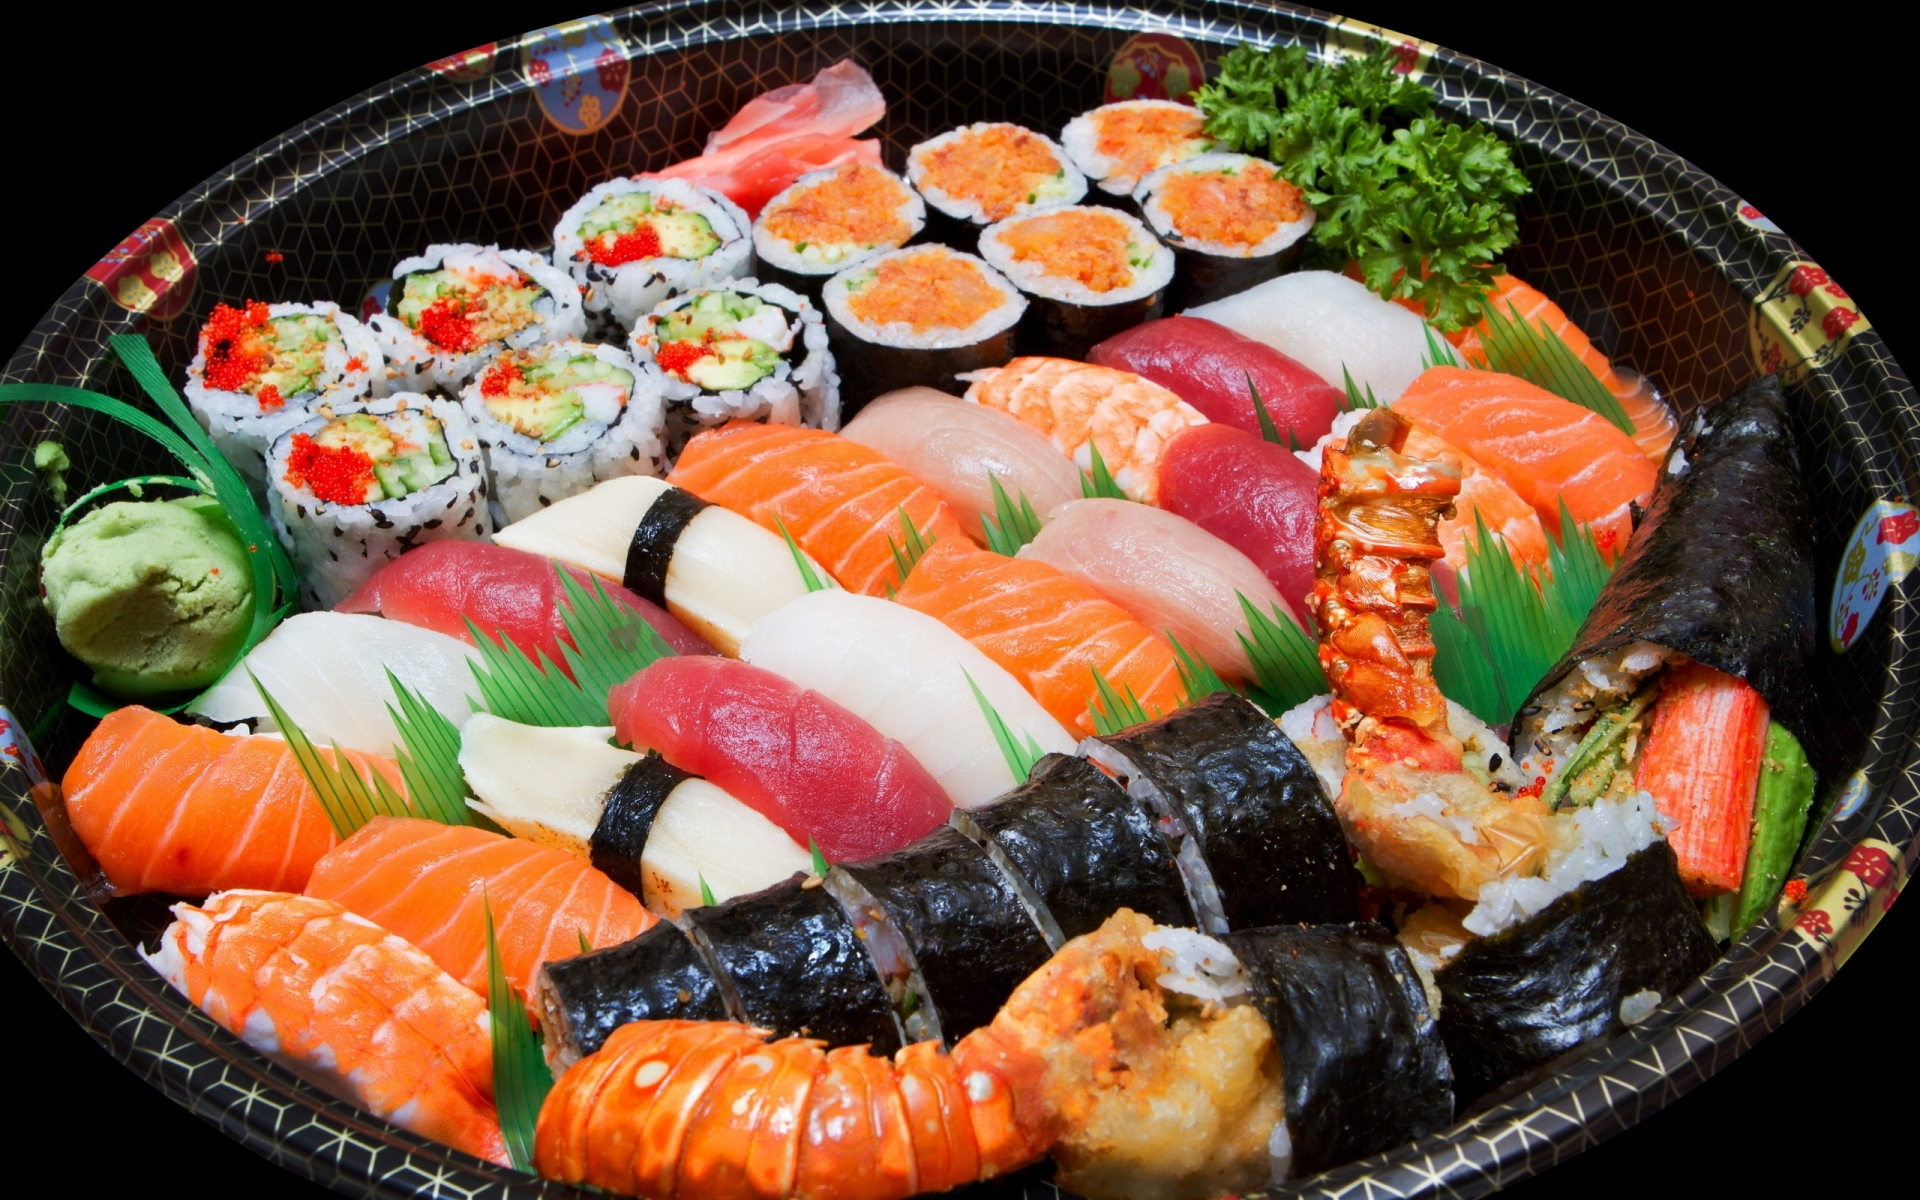 El Plato Sushi hd 1920x1200 imagenes wallpapers gratis